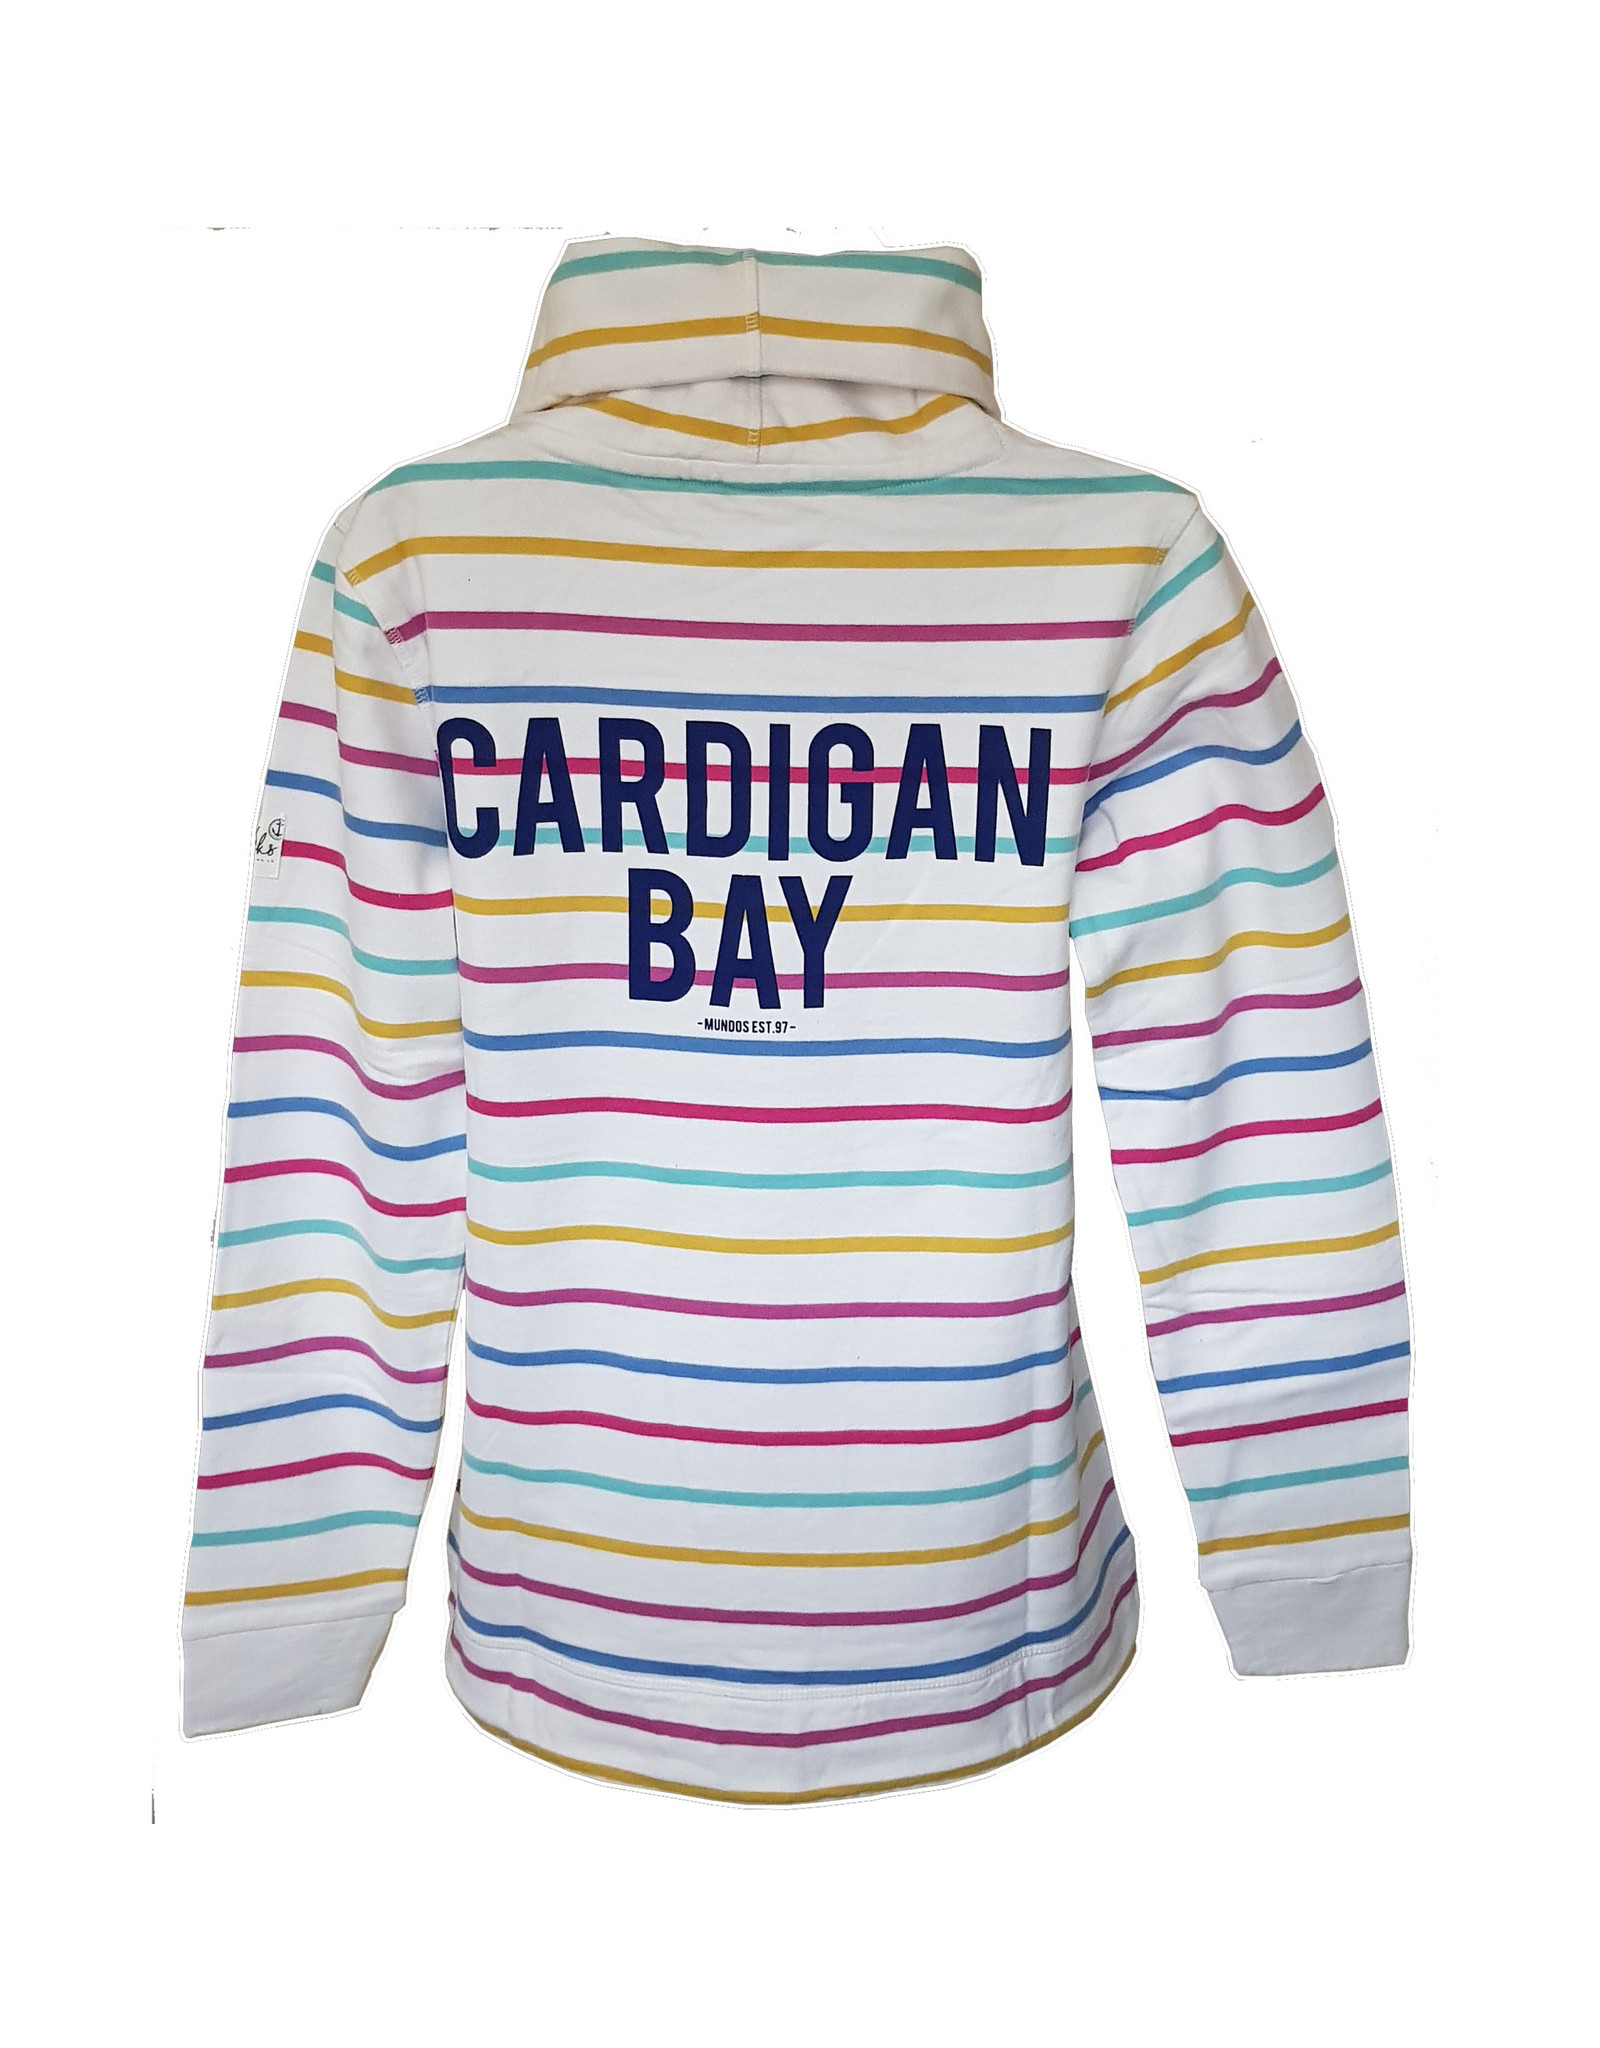 Lazy Jacks Lazy Jacks Roll Necked Striped Sweat LJ31 - Cardigan Bay Print